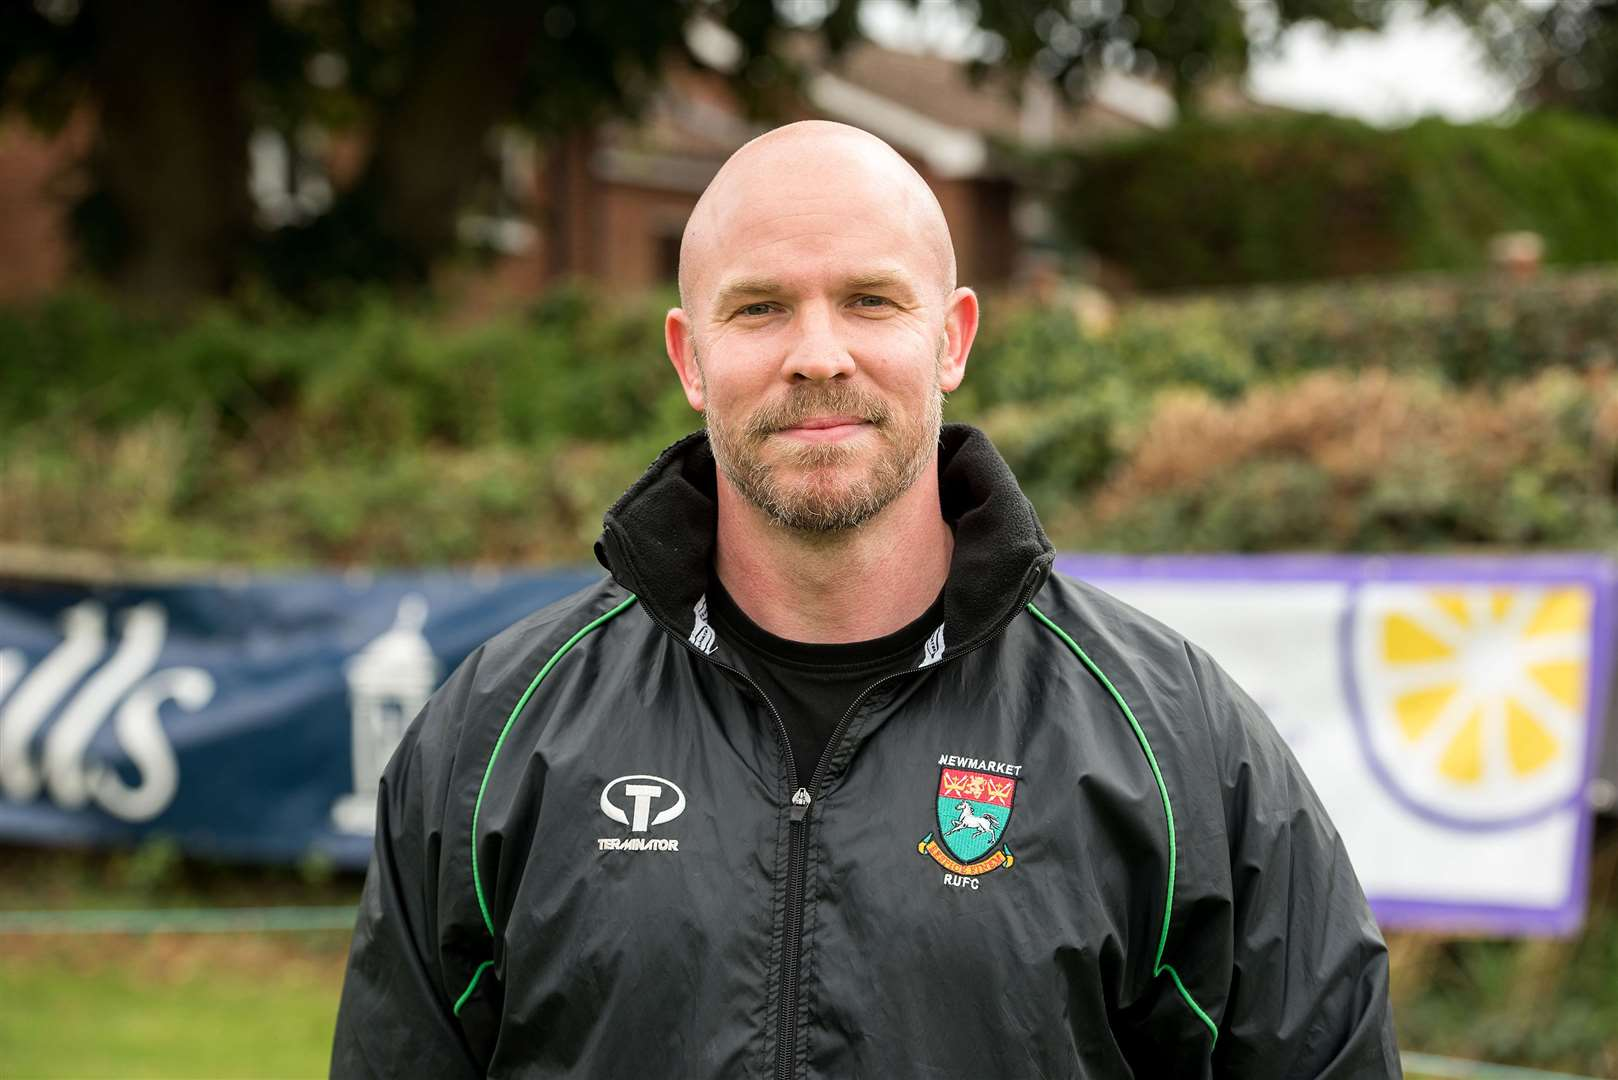 Newmarket head coach Martyn Wall